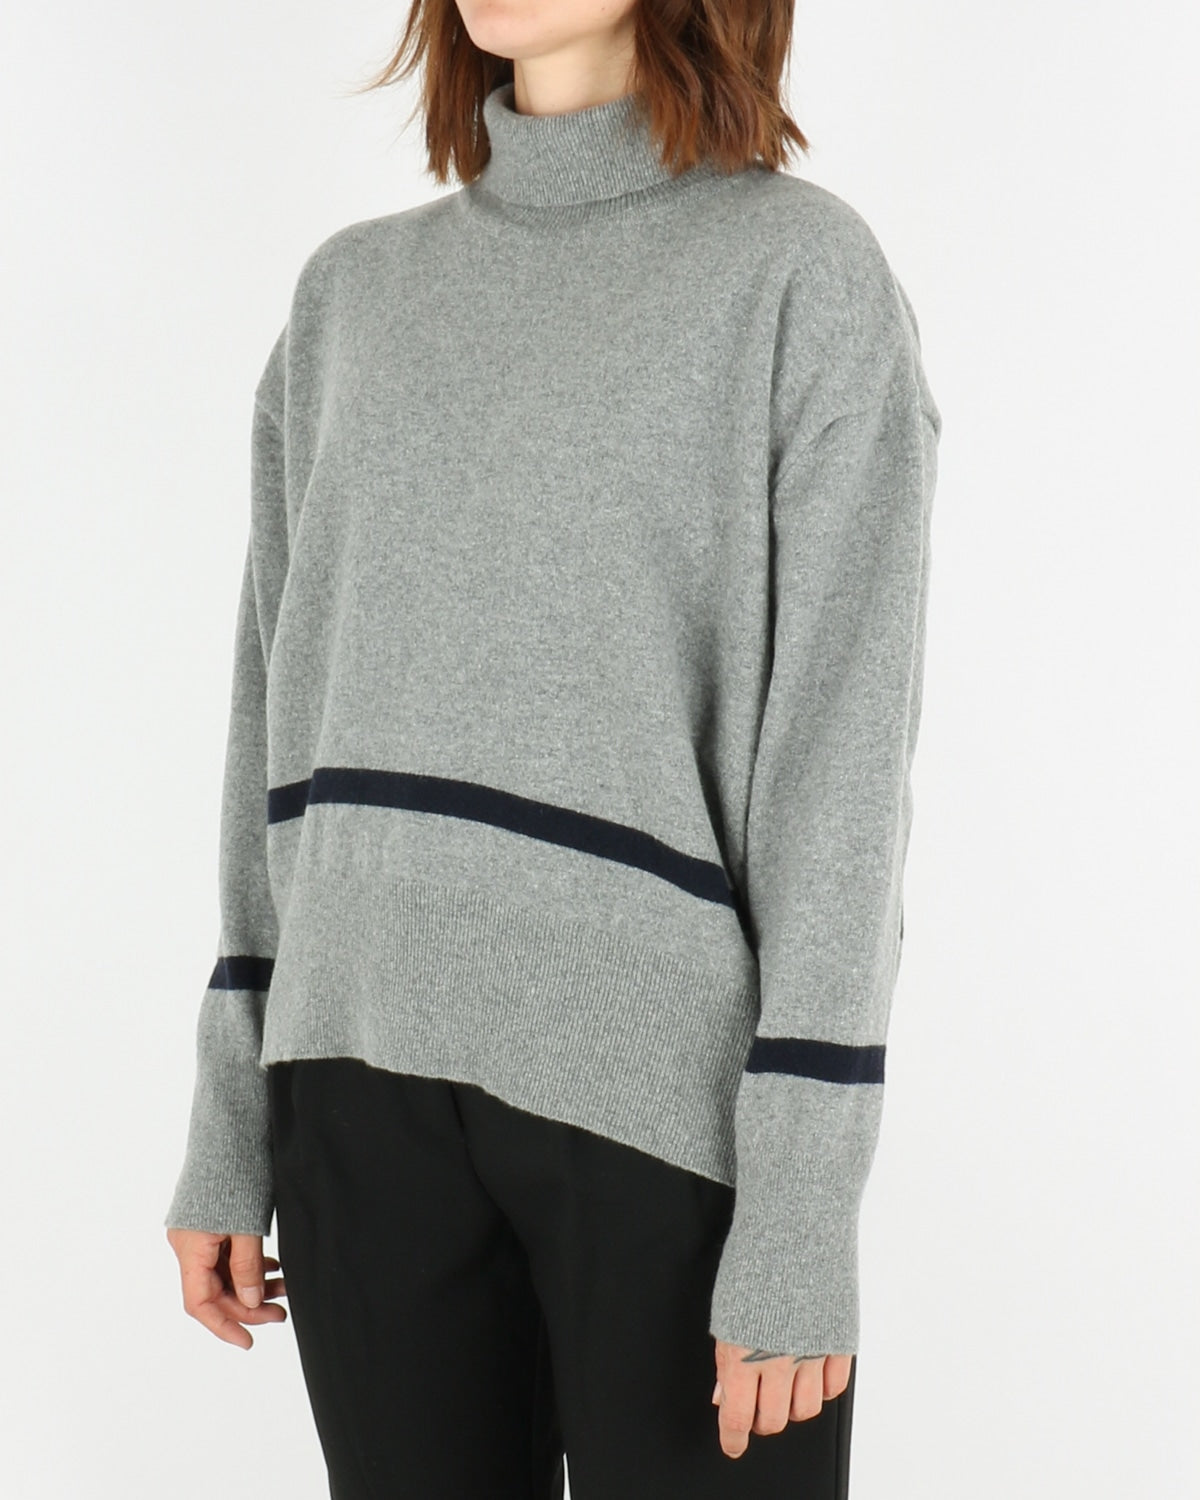 libertine libertine_husky knit_grey melange dark navy_2_4